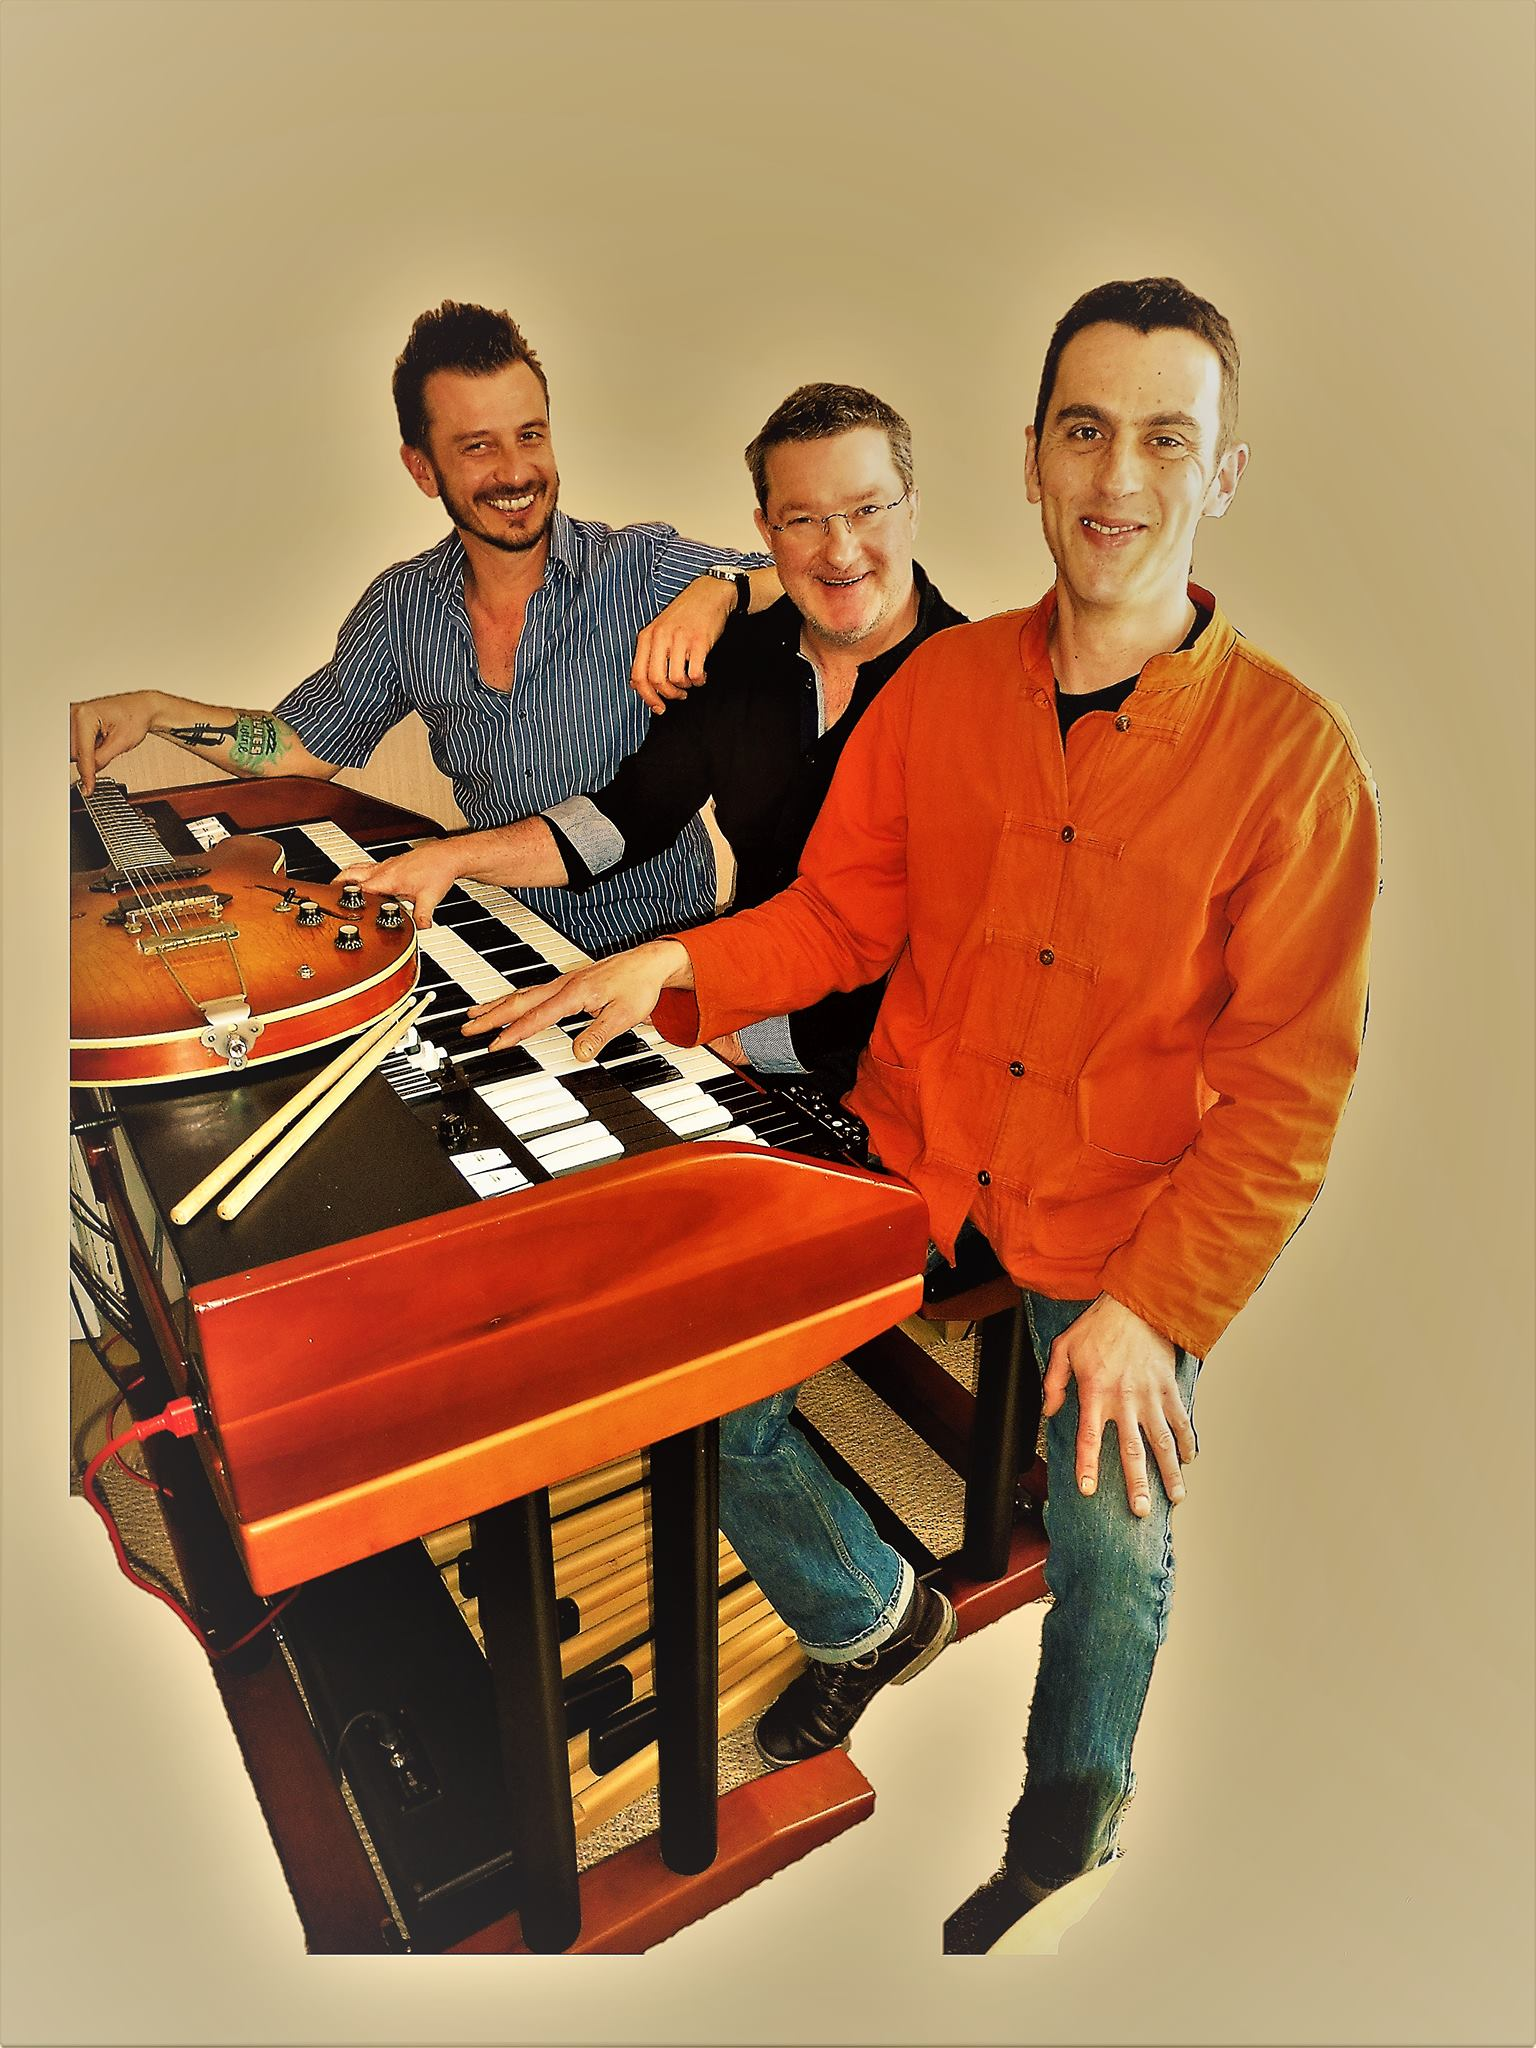 Vendredi 5 Avril à 20H - BLUES ORGAN COMBO